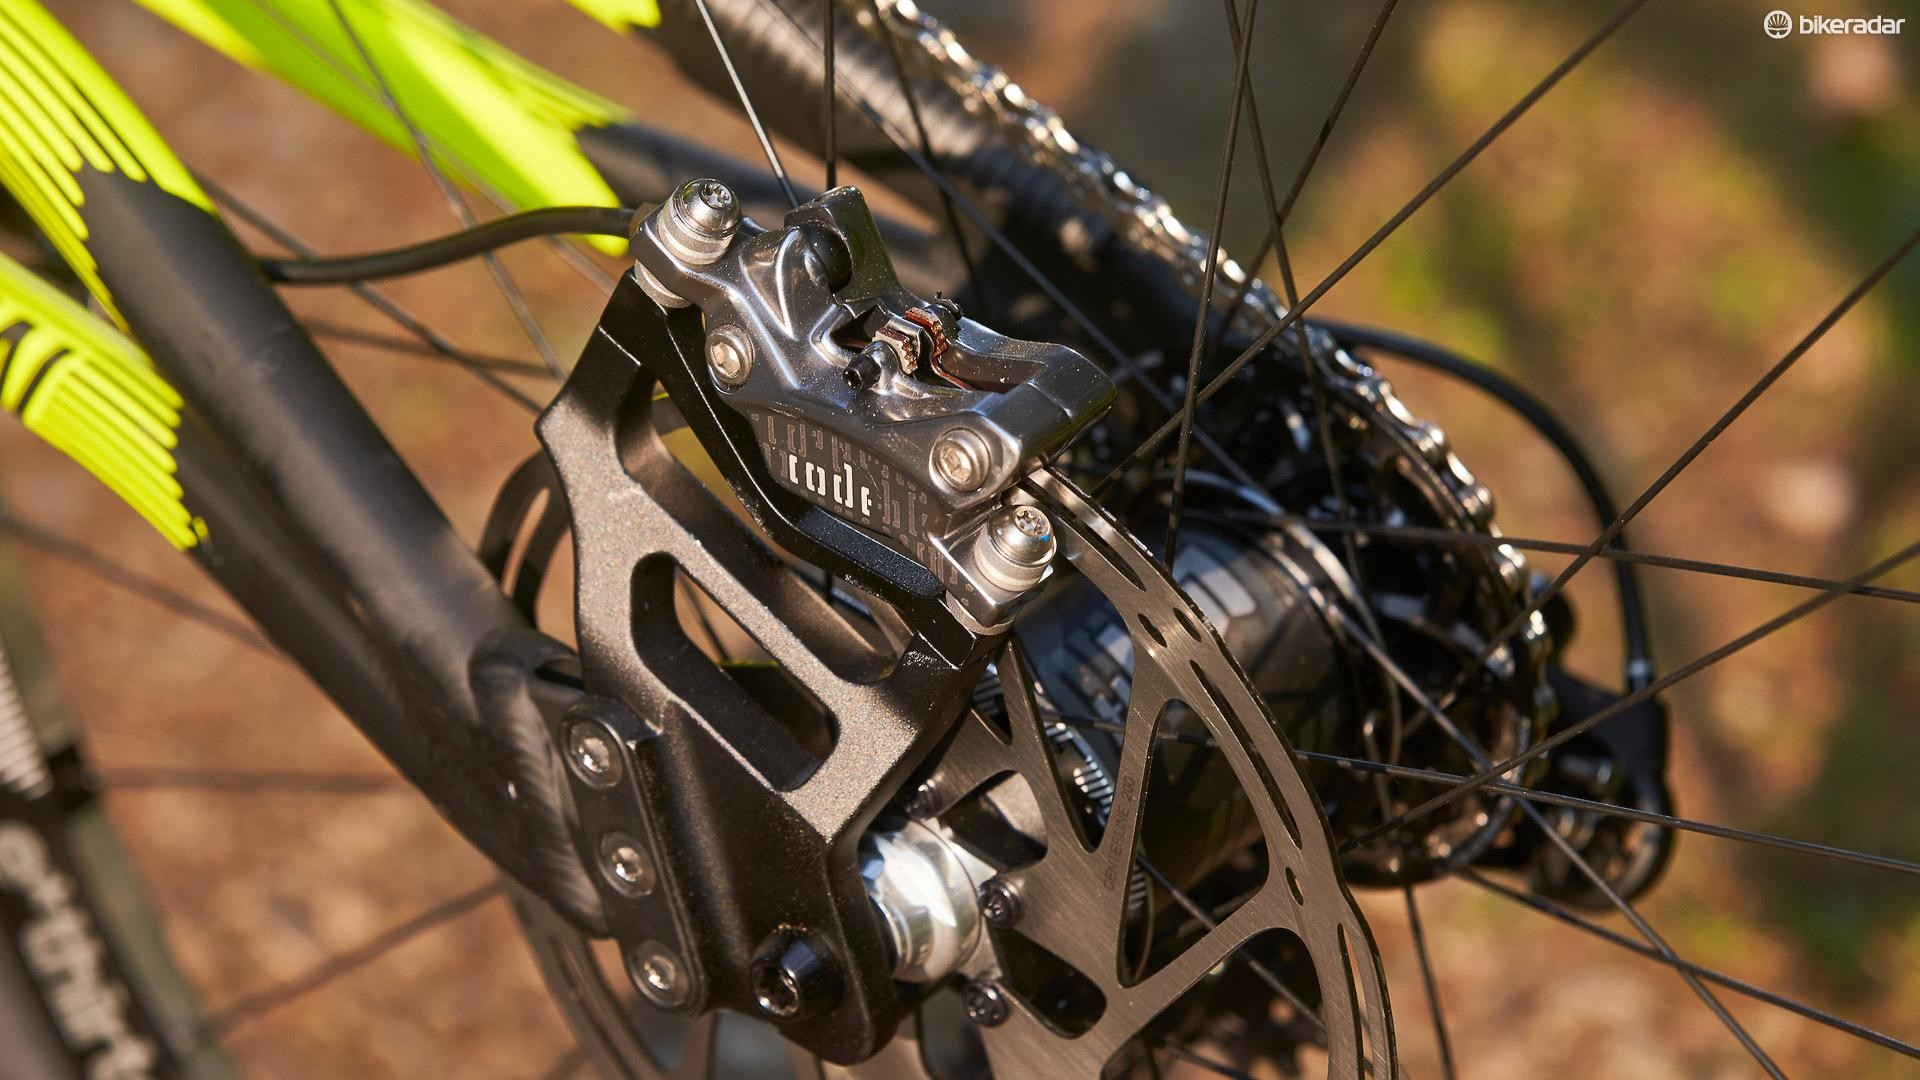 SRAM Code four piston stoppers do a fine job of hauling up the Supreme's bulk